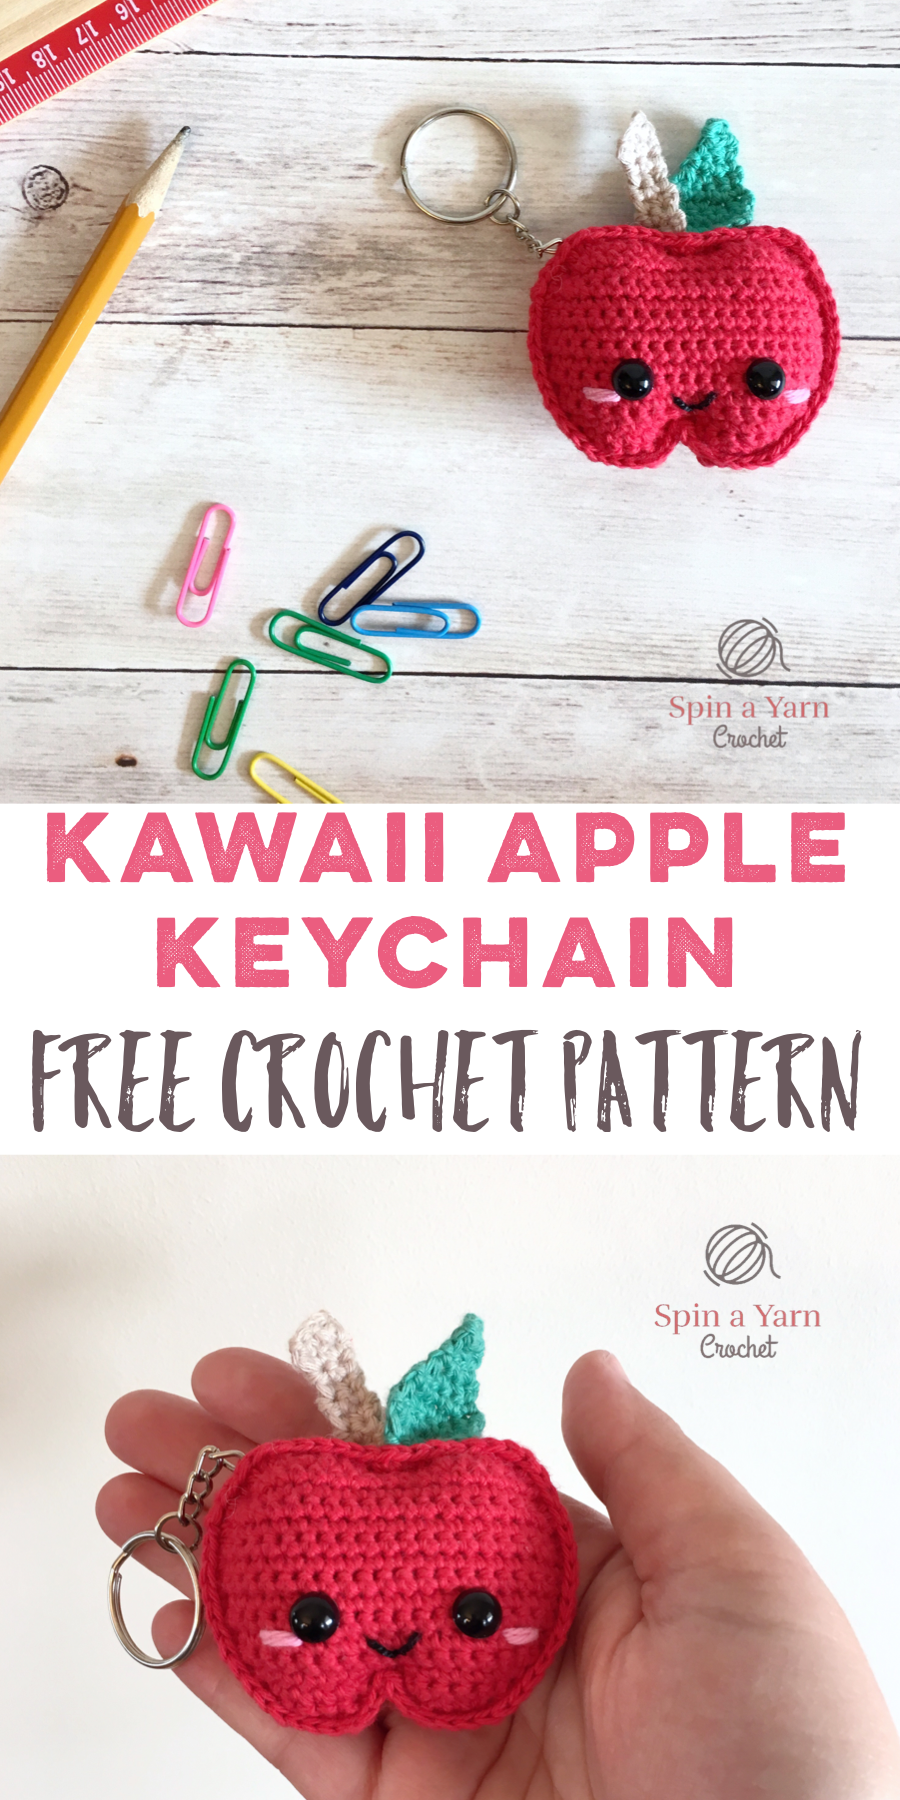 Kawaii Apple Keychain Free Crochet Pattern | amigurumi | Pinterest ...